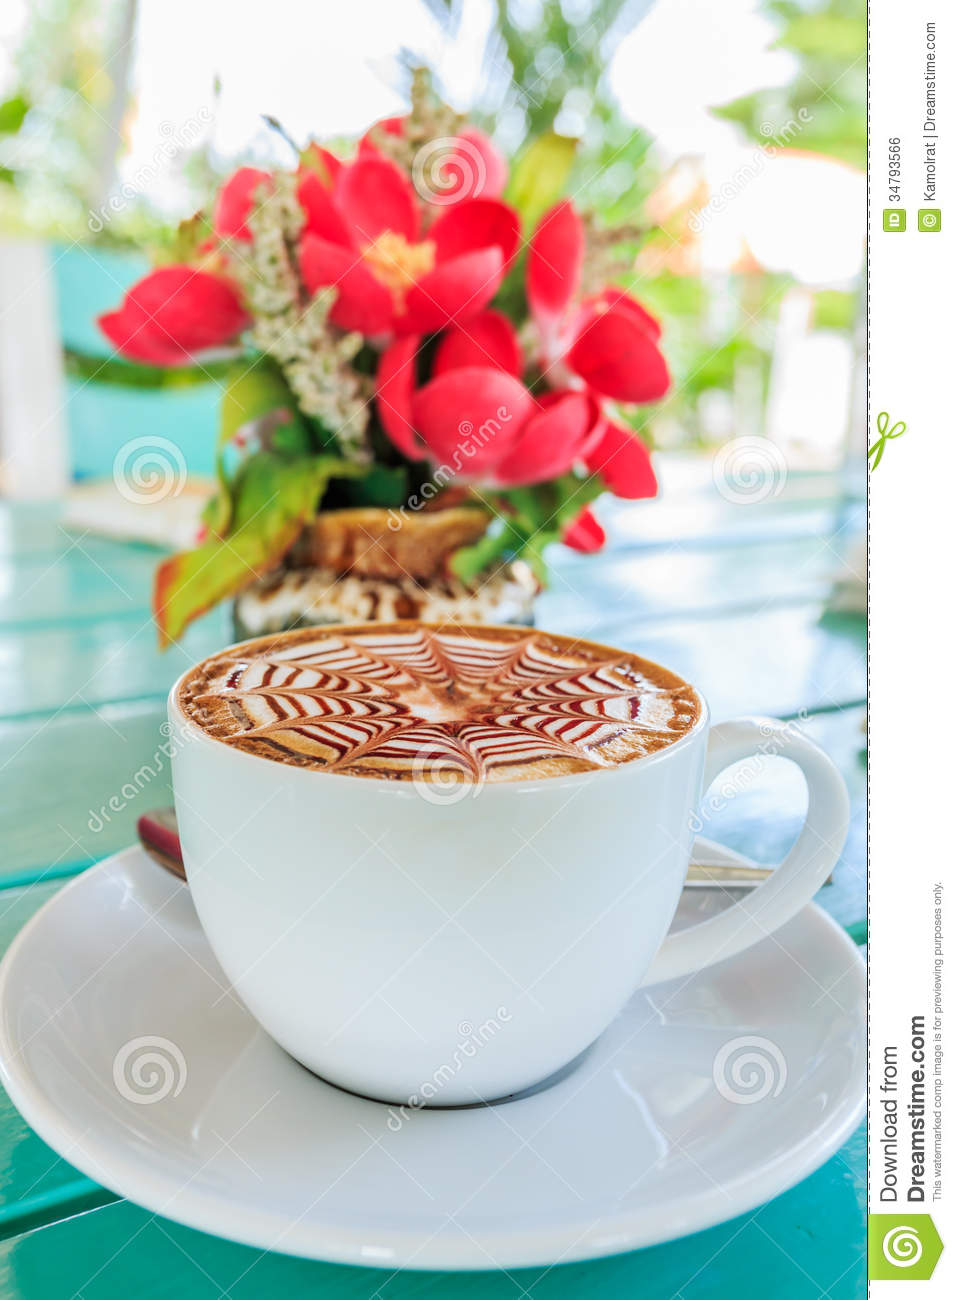 Cup Of Coffee With Flower Royalty Free Stock Image - Image ...